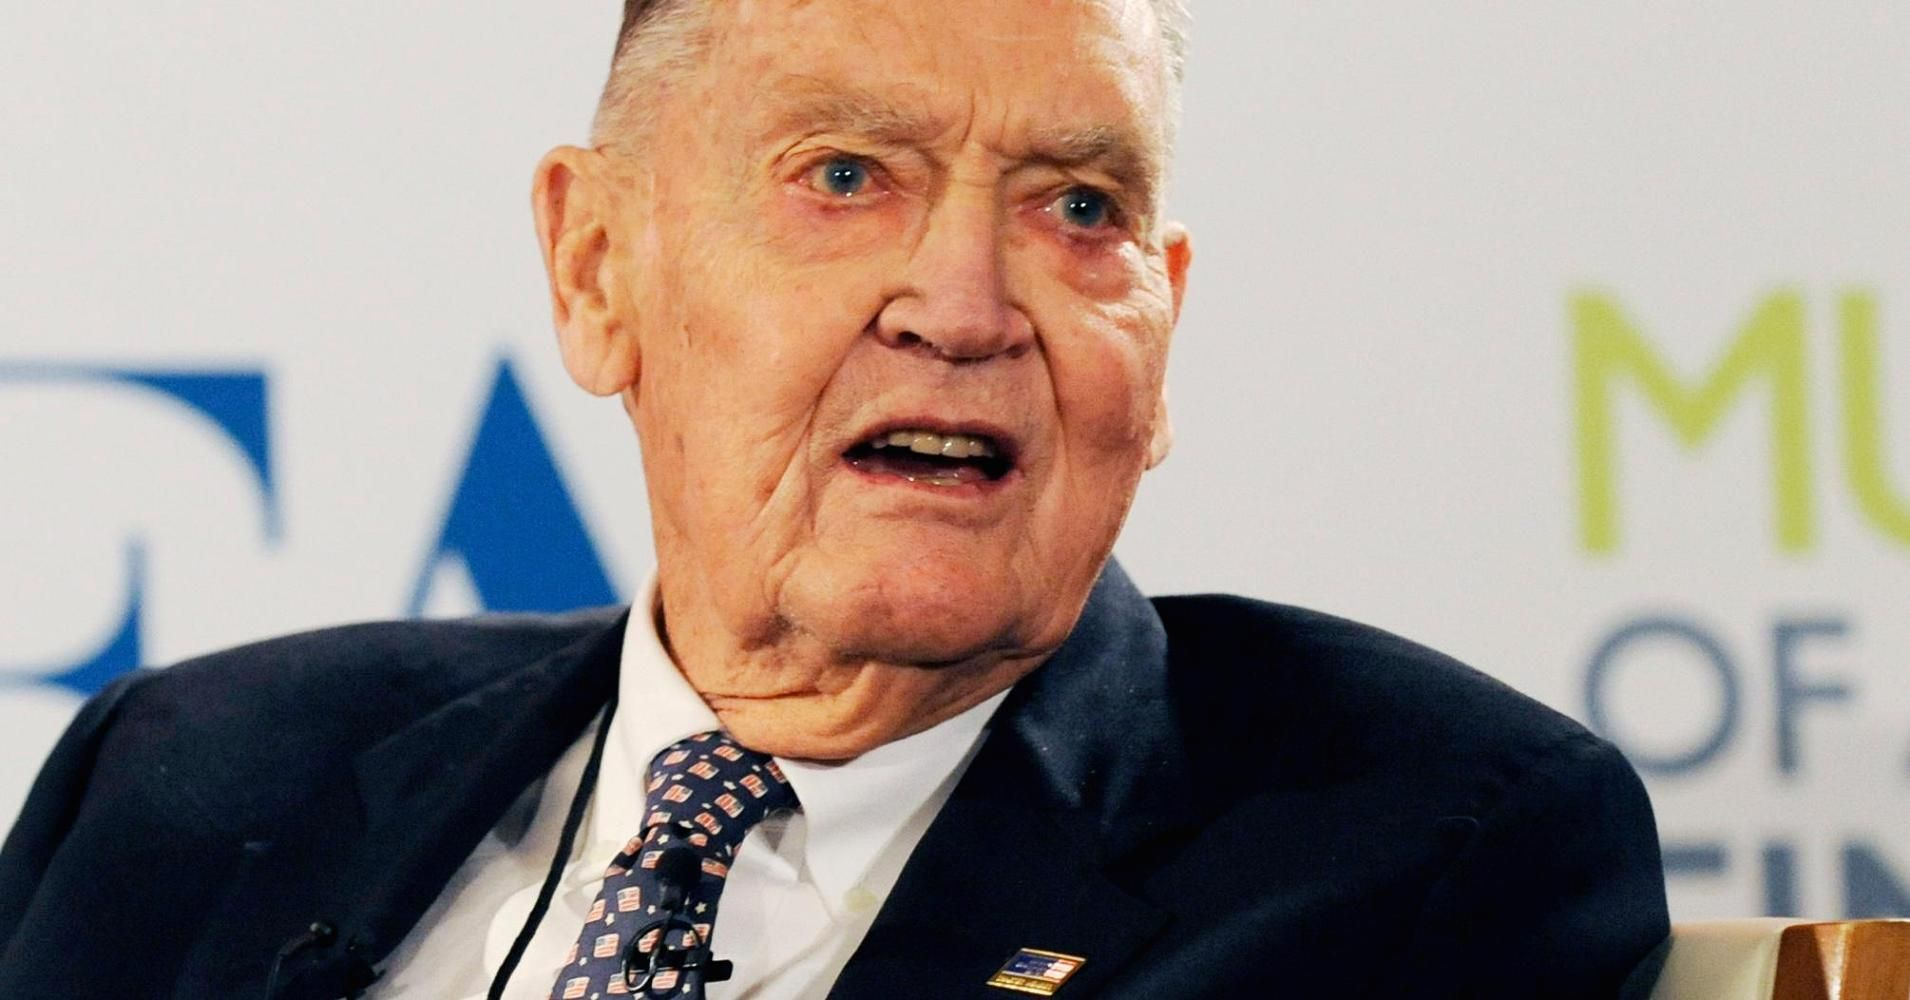 Jack Bogle follows four simple rules when it comes to